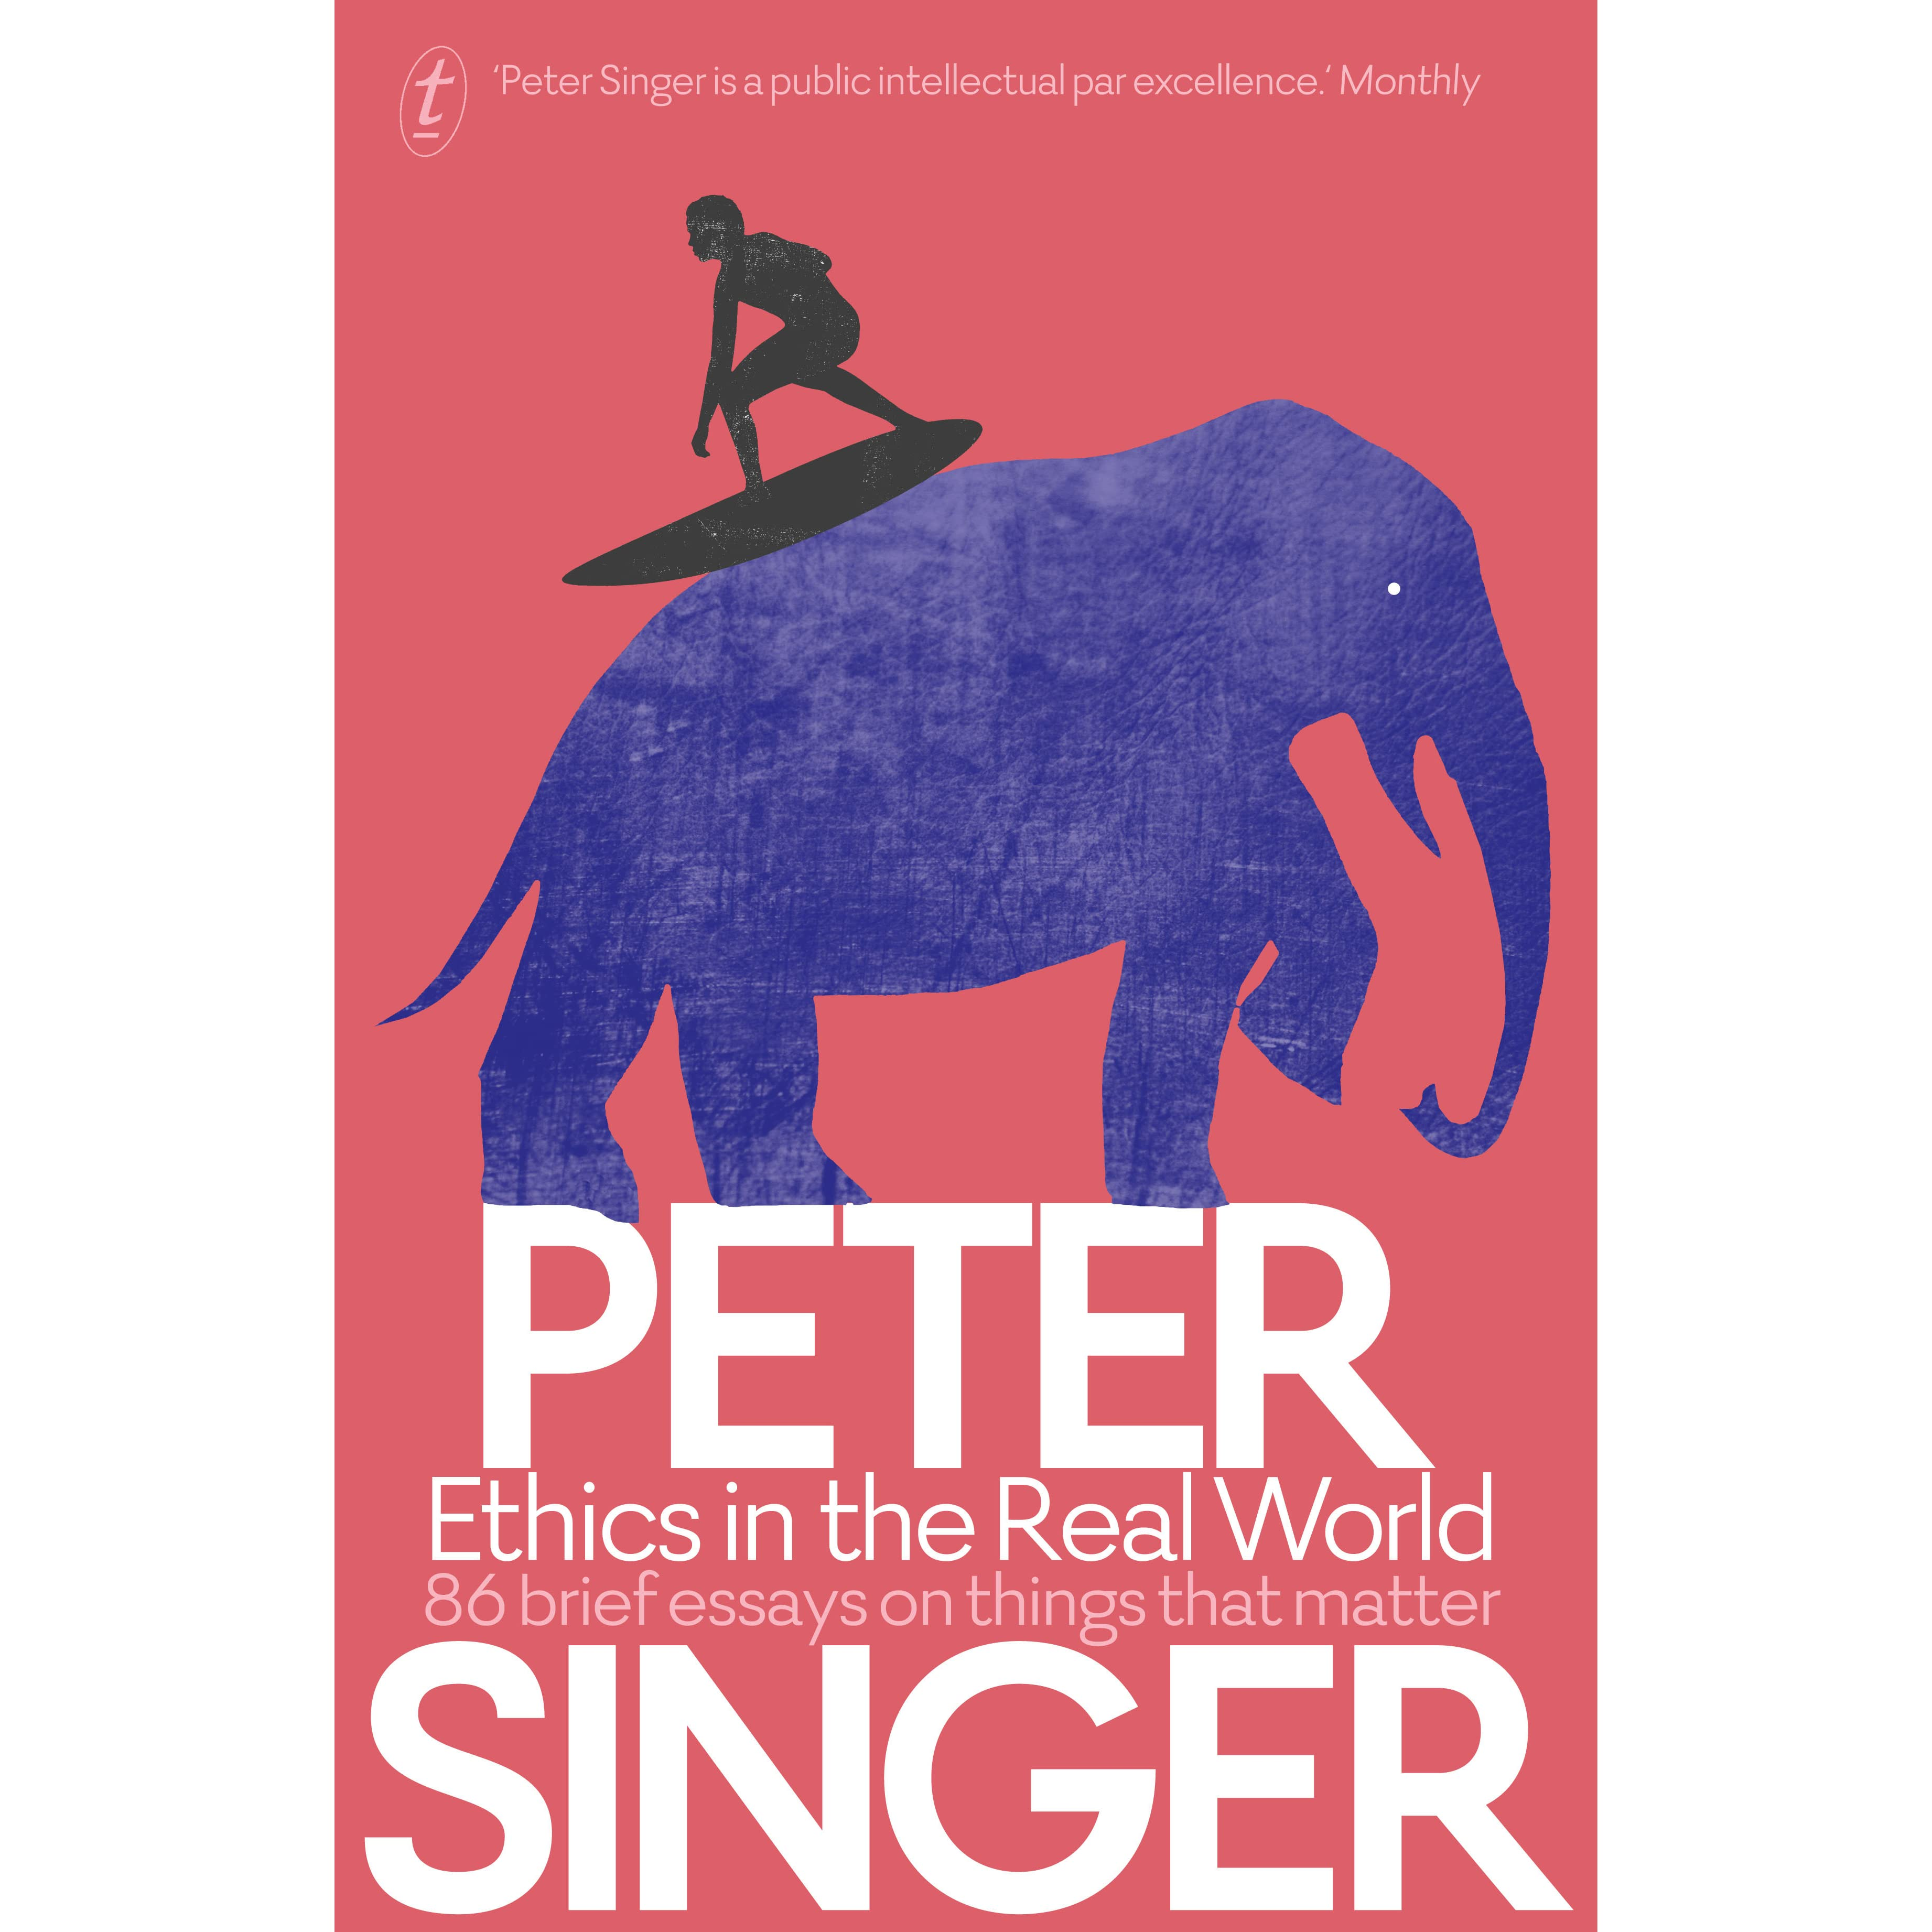 ethics in the real world 86 brief essays on things that matter by ethics in the real world 86 brief essays on things that matter by peter singer reviews discussion bookclubs lists